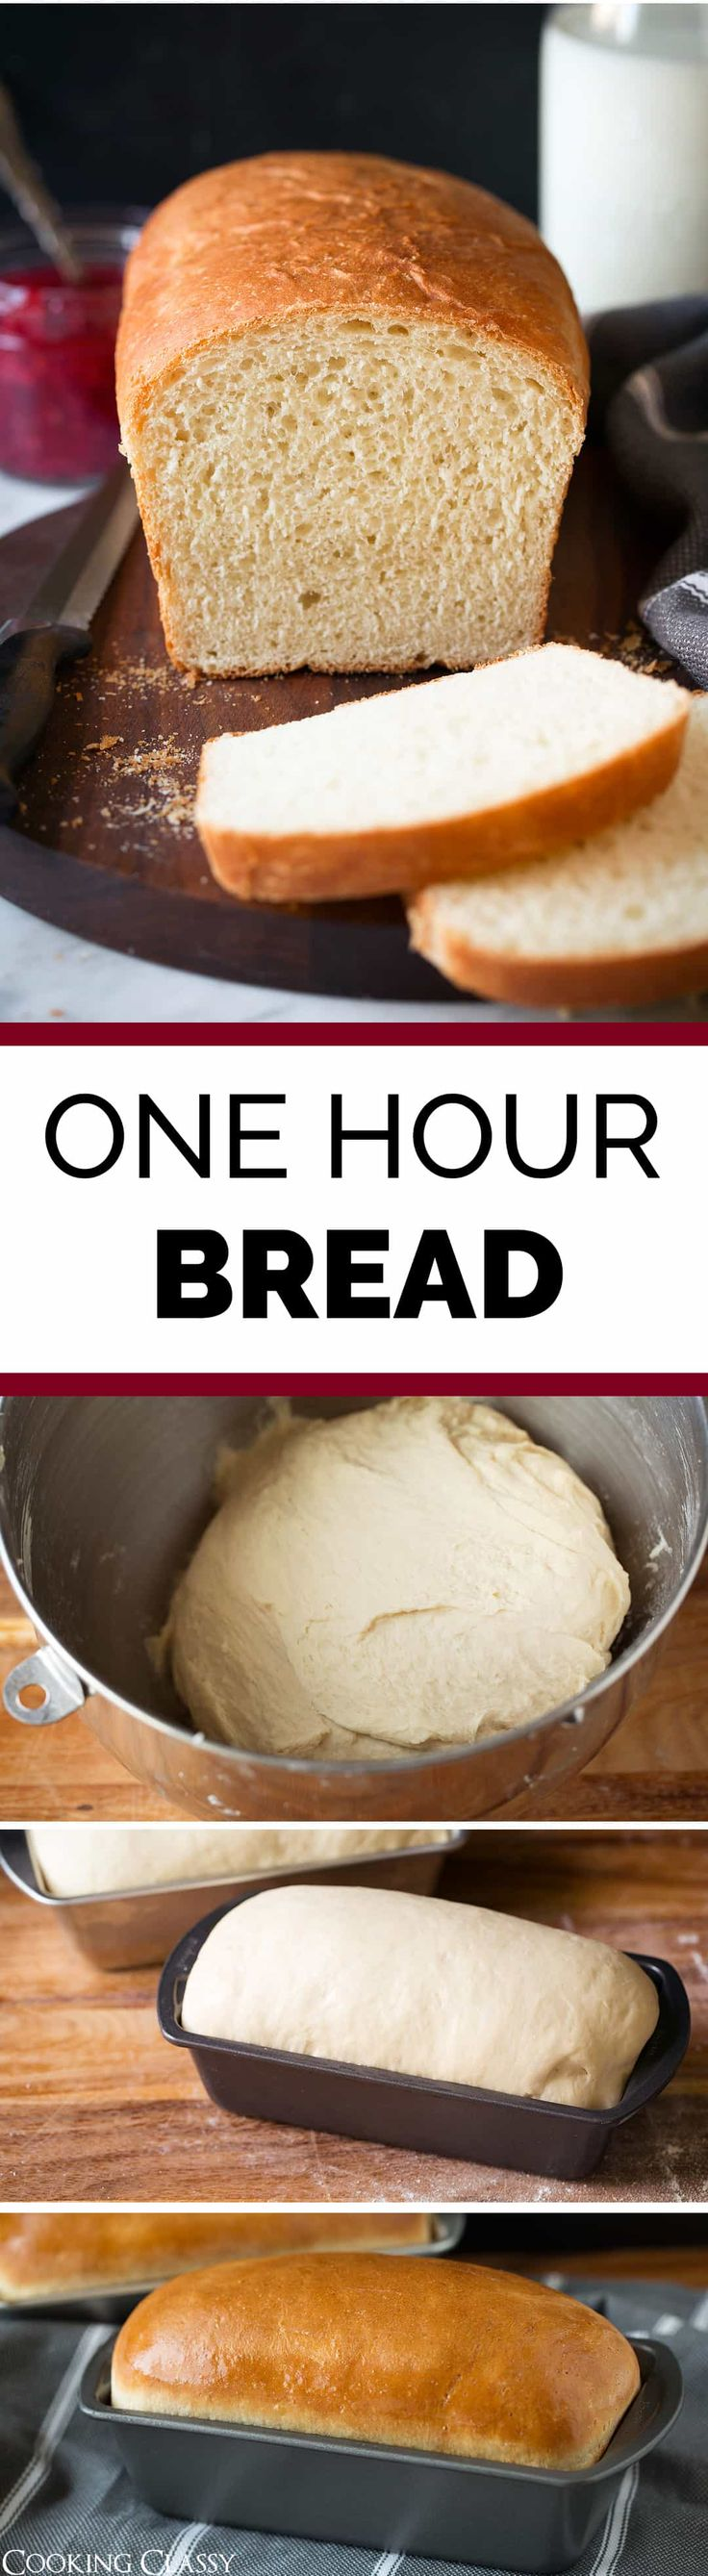 One Hour Bread - ready from start to finish in 1 HOUR! So easy, so fast and oh so delicious! Perfect for soup, sandwiches, and French toast. Via @cookingclassy #easy #onehour #bread #recipe